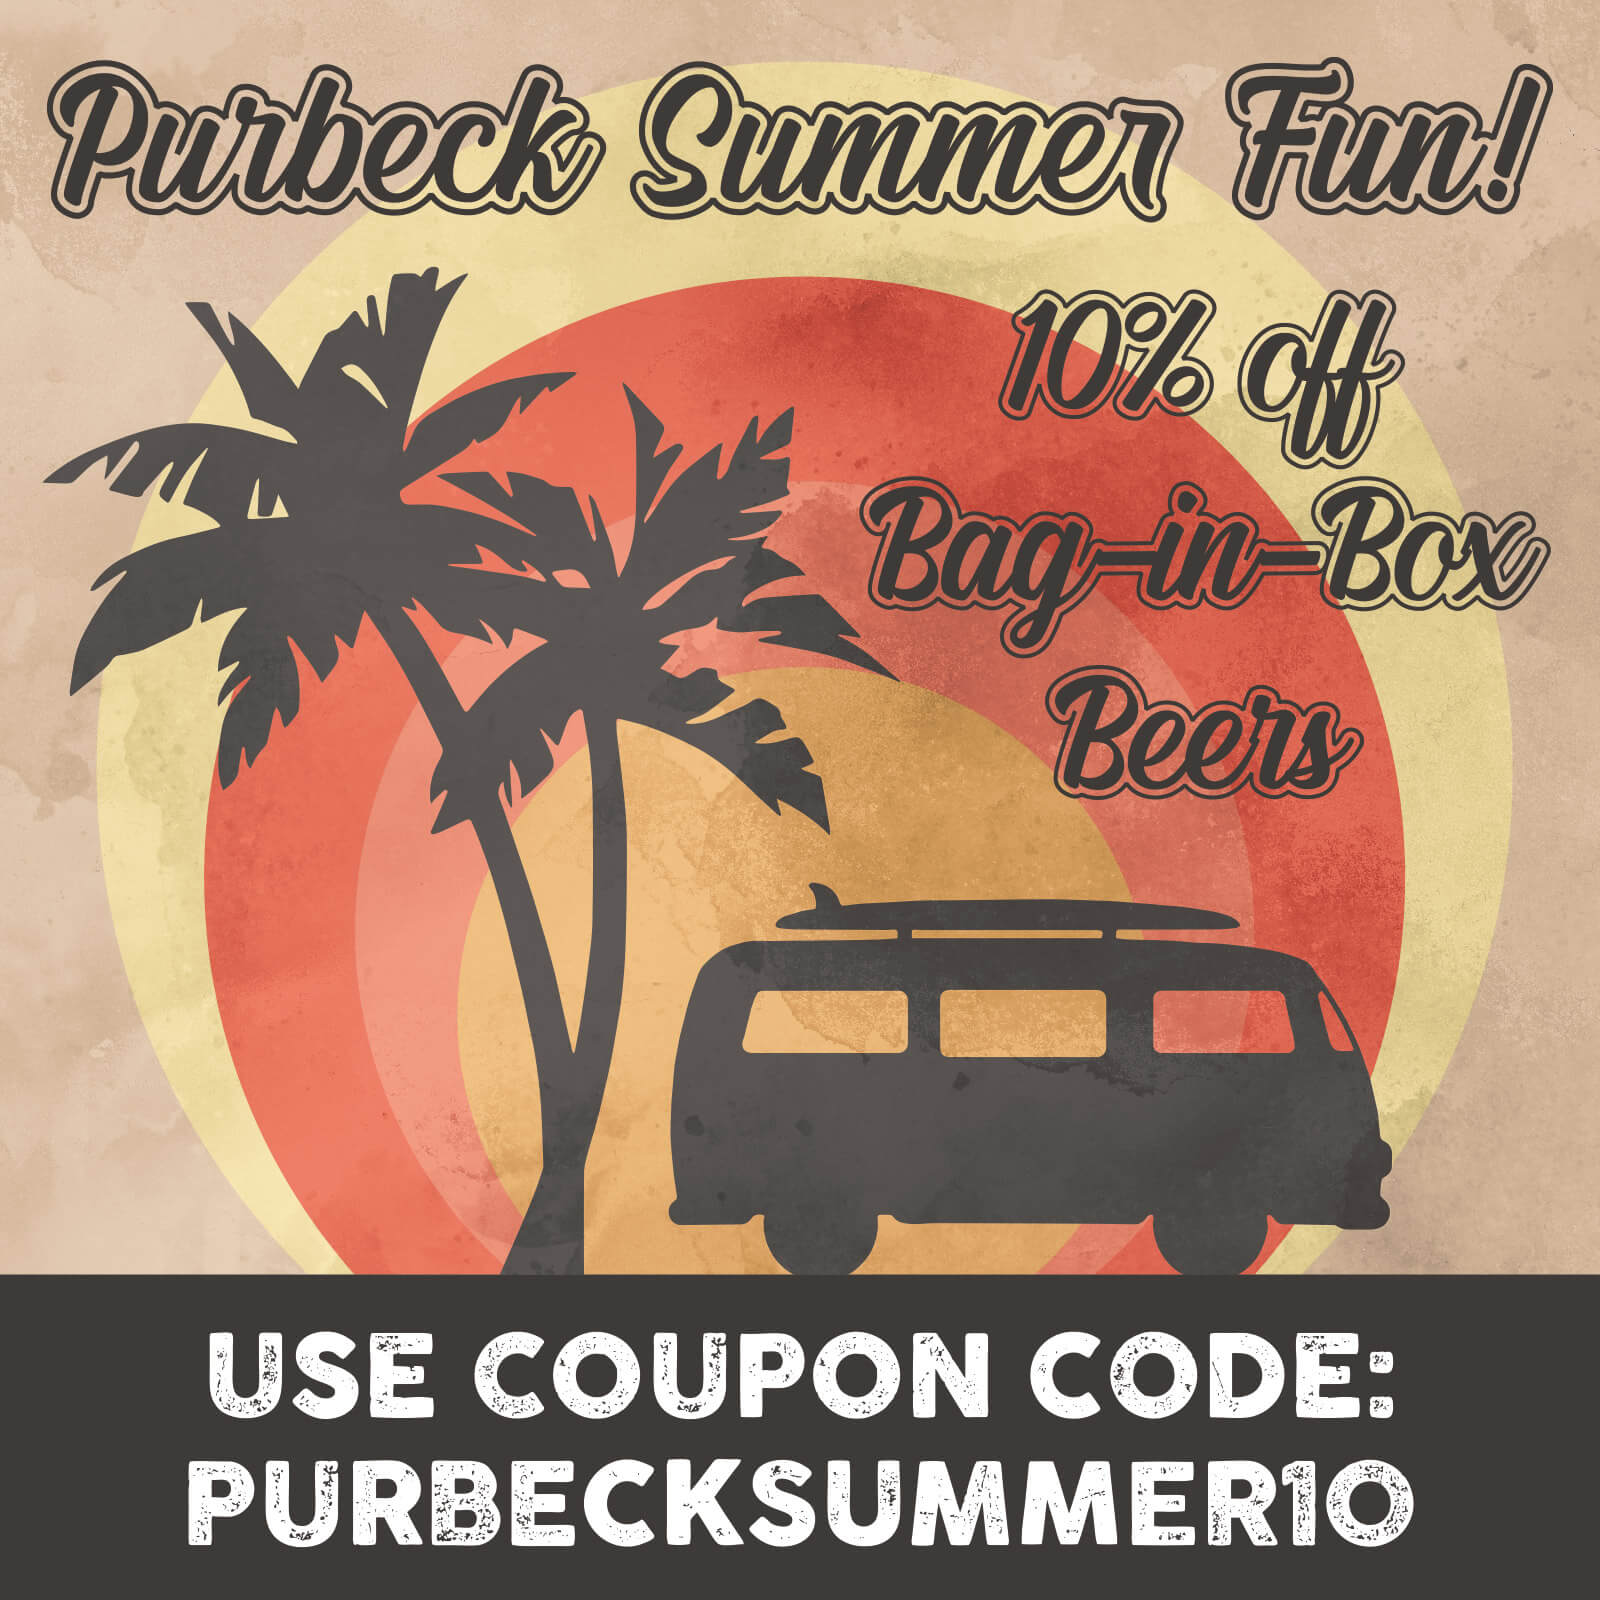 PURBECKSUMMER10 - 10% off all Isle of Purbeck Brewery Bag-in-Box beers